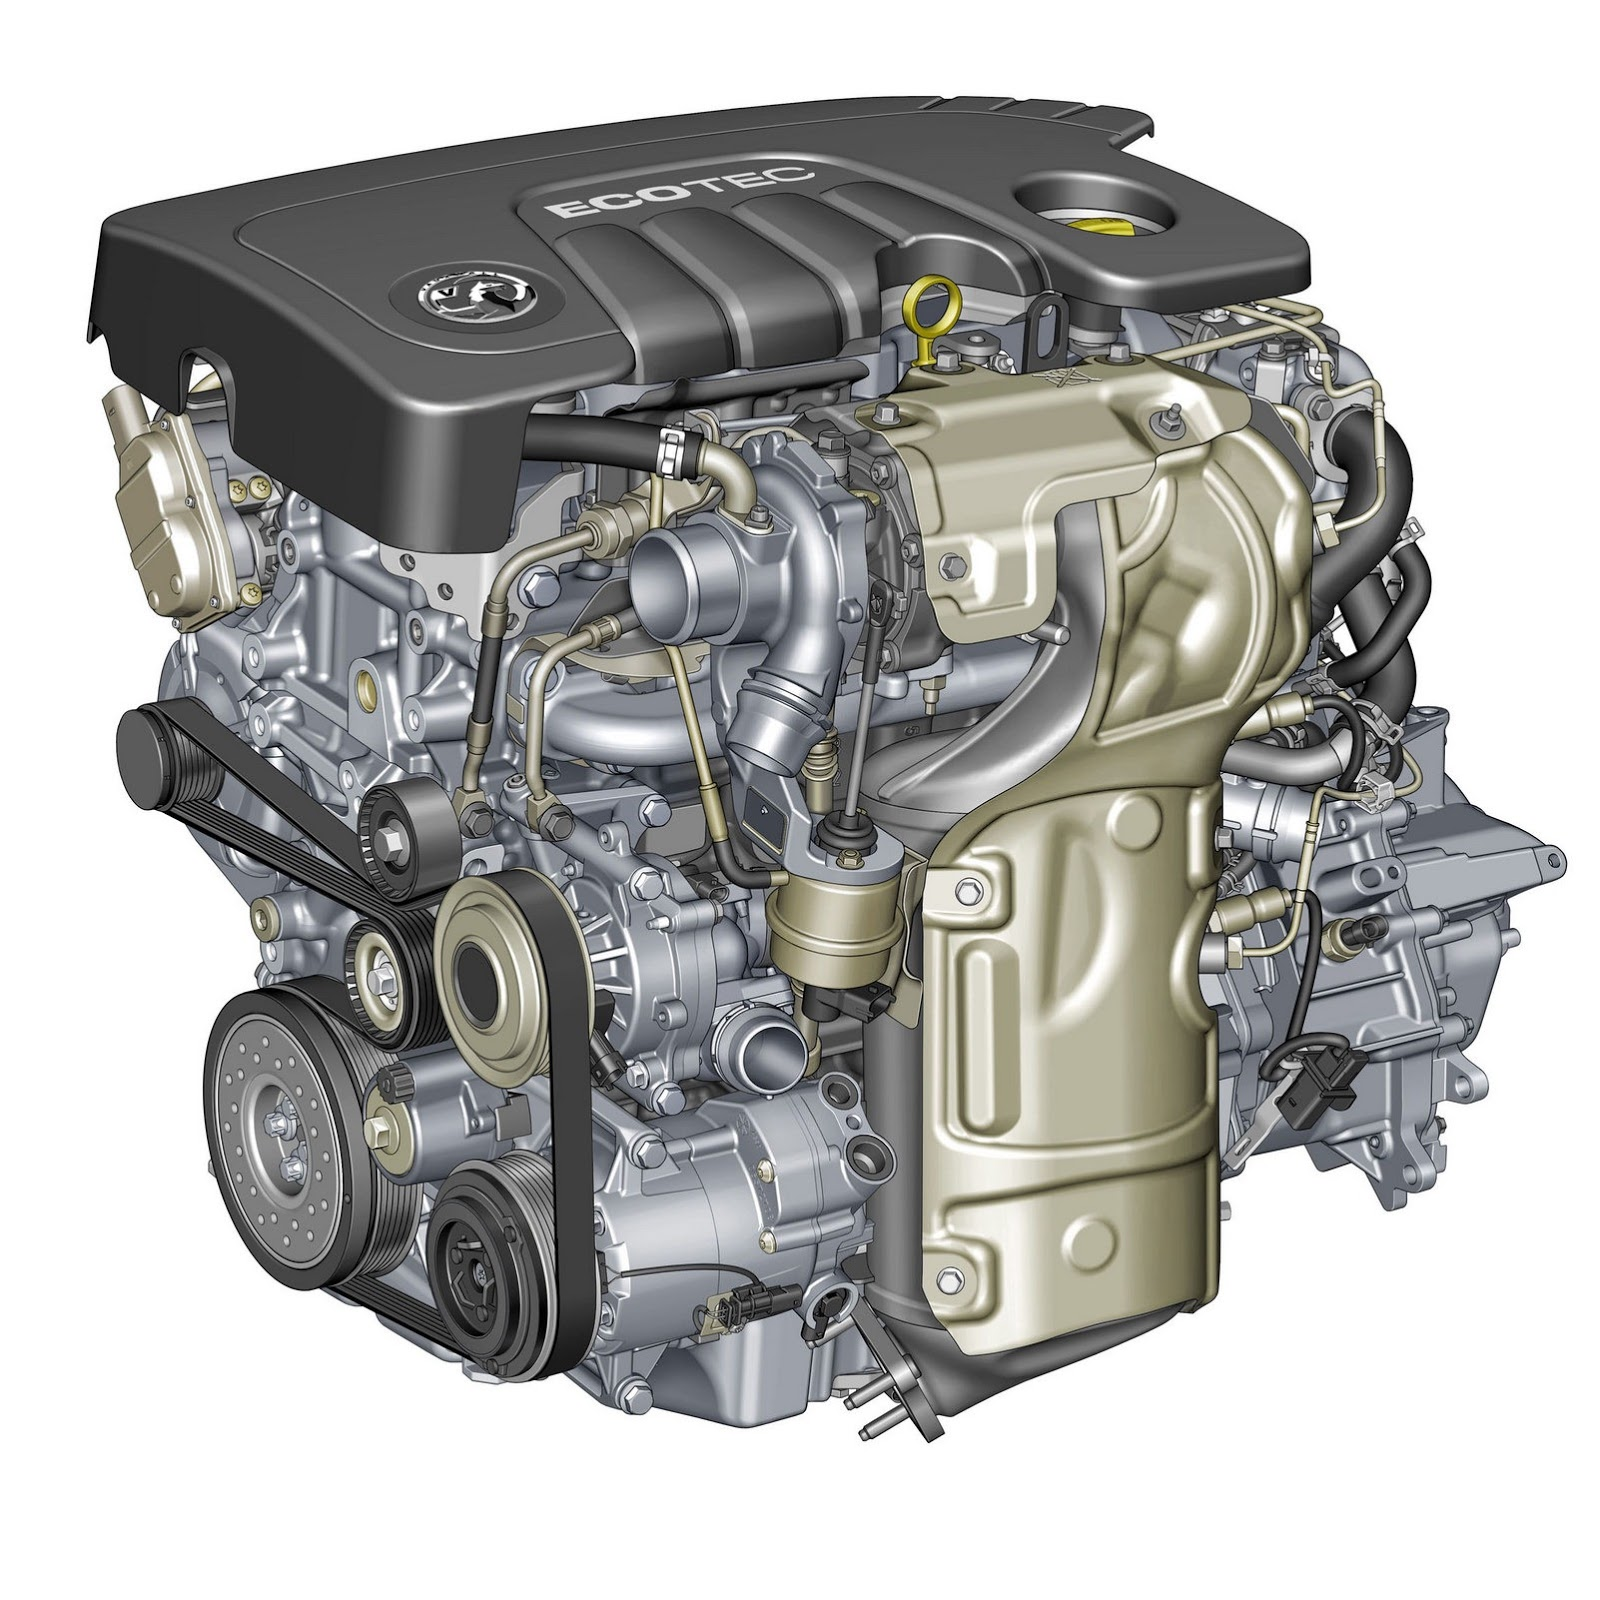 Opel-Vauxhall Zafira New Diesel Engine - 4